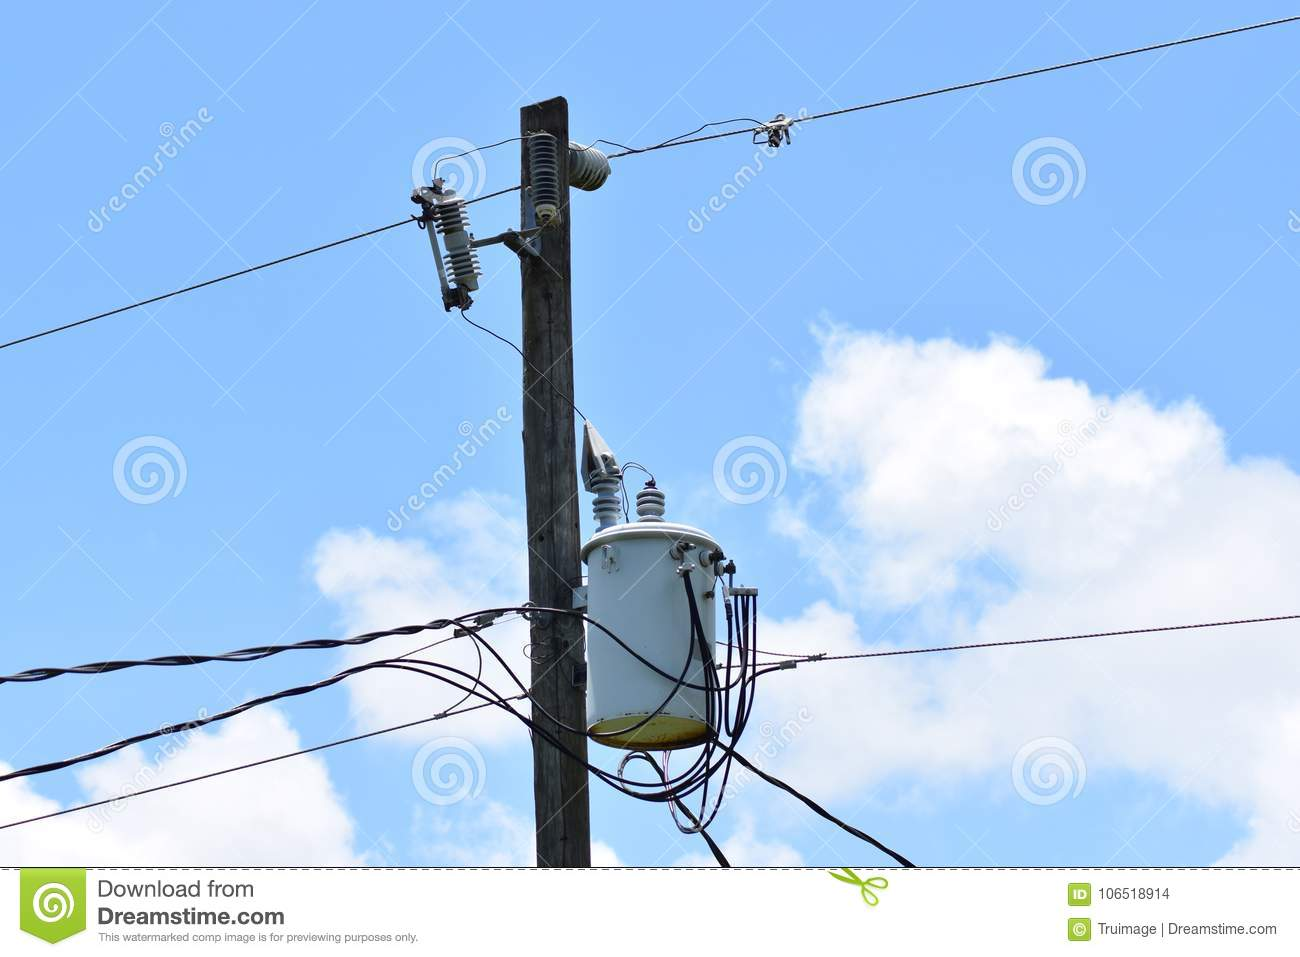 hight resolution of electric pole wires and transformer